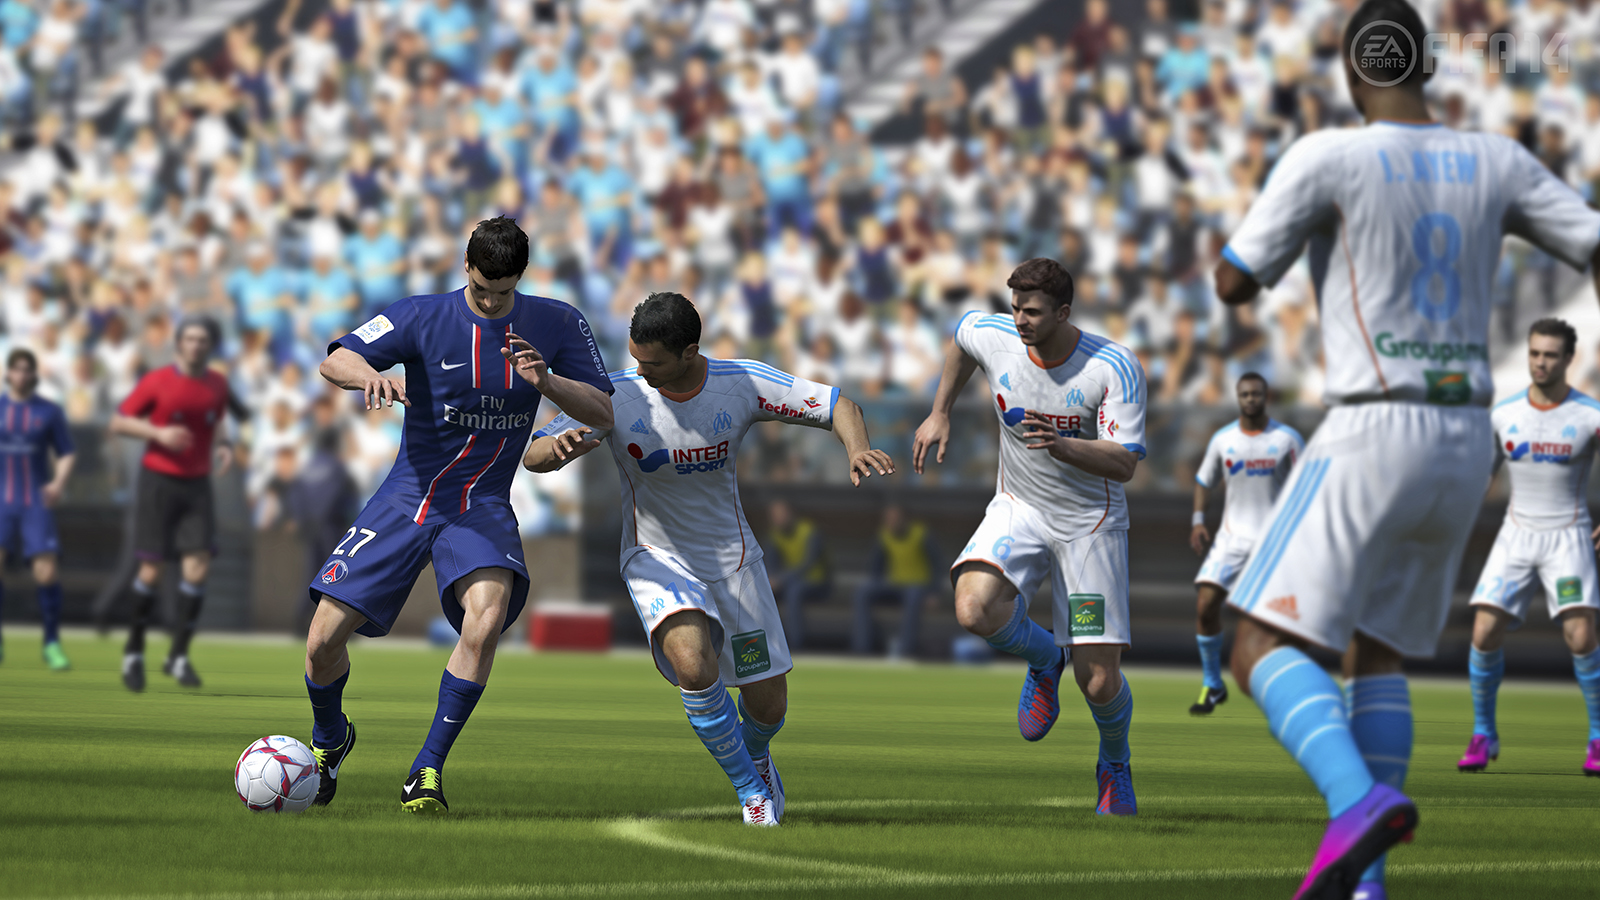 Fifa 14 ps3 4gamer fifa 14 voltagebd Image collections